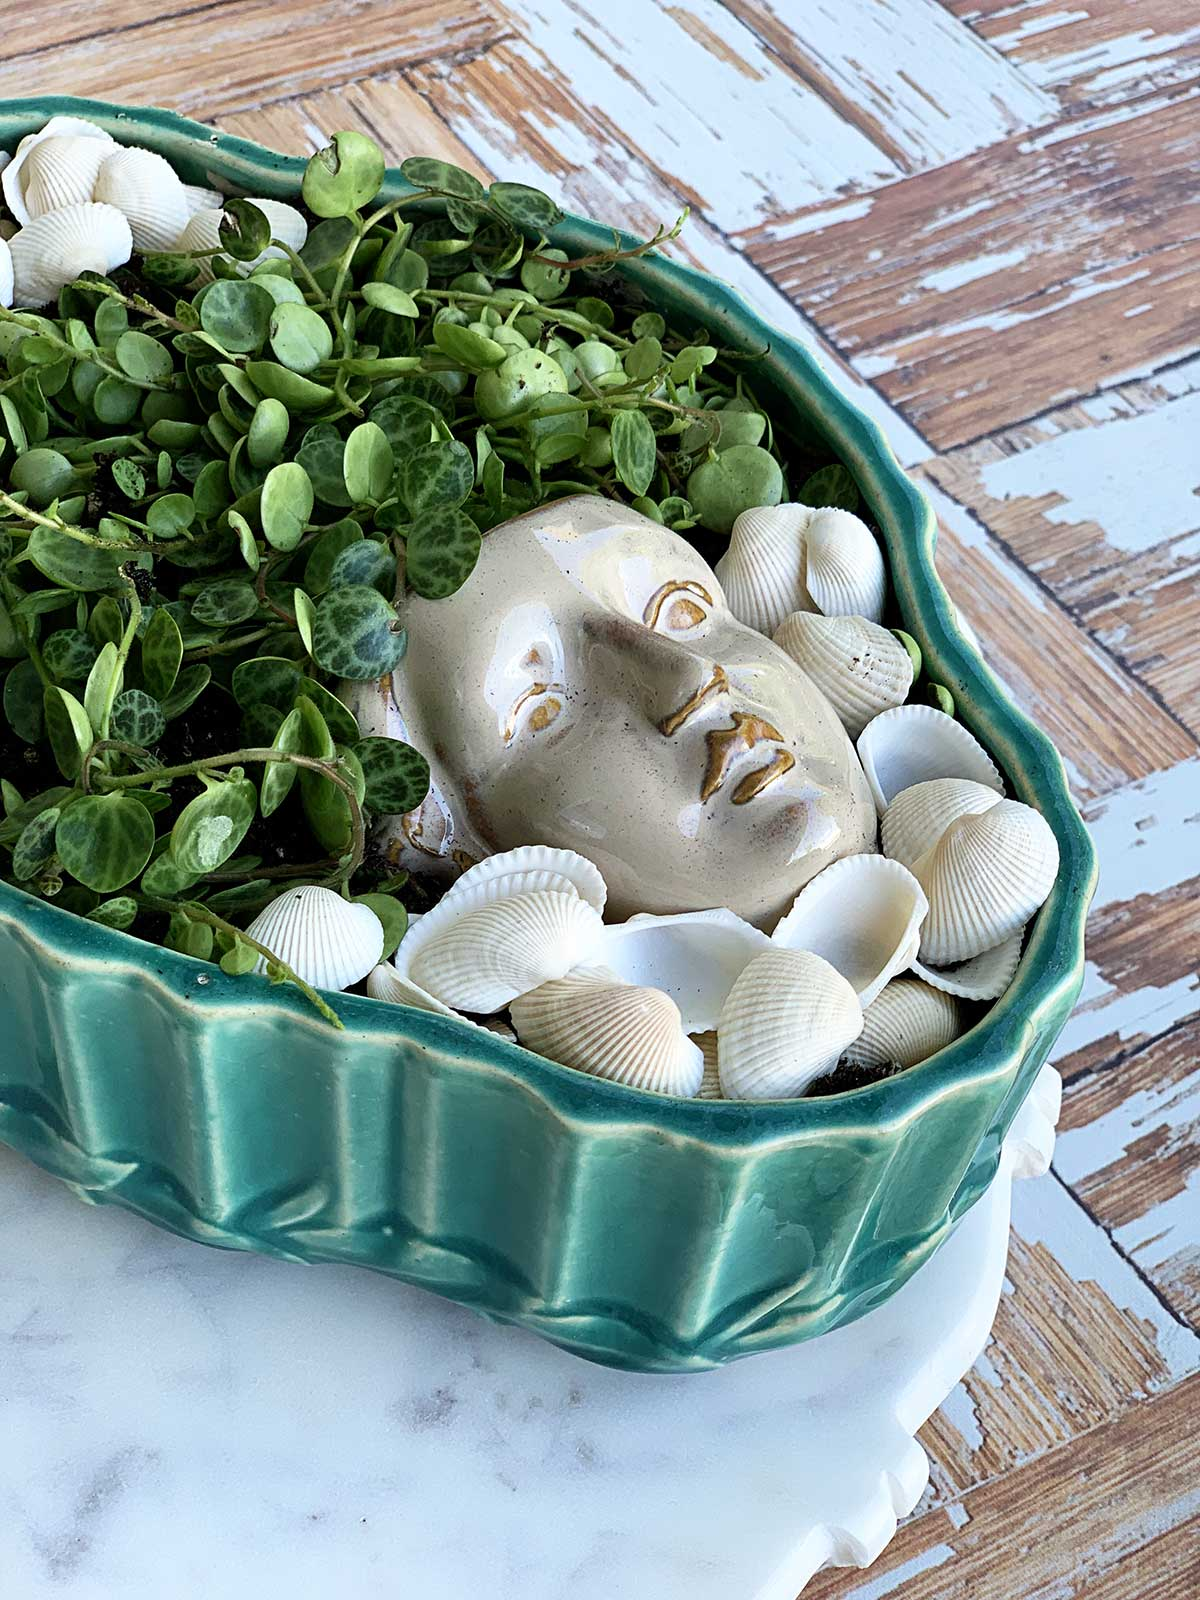 Planter shaped like a head setting in a shallow succulent bowl.